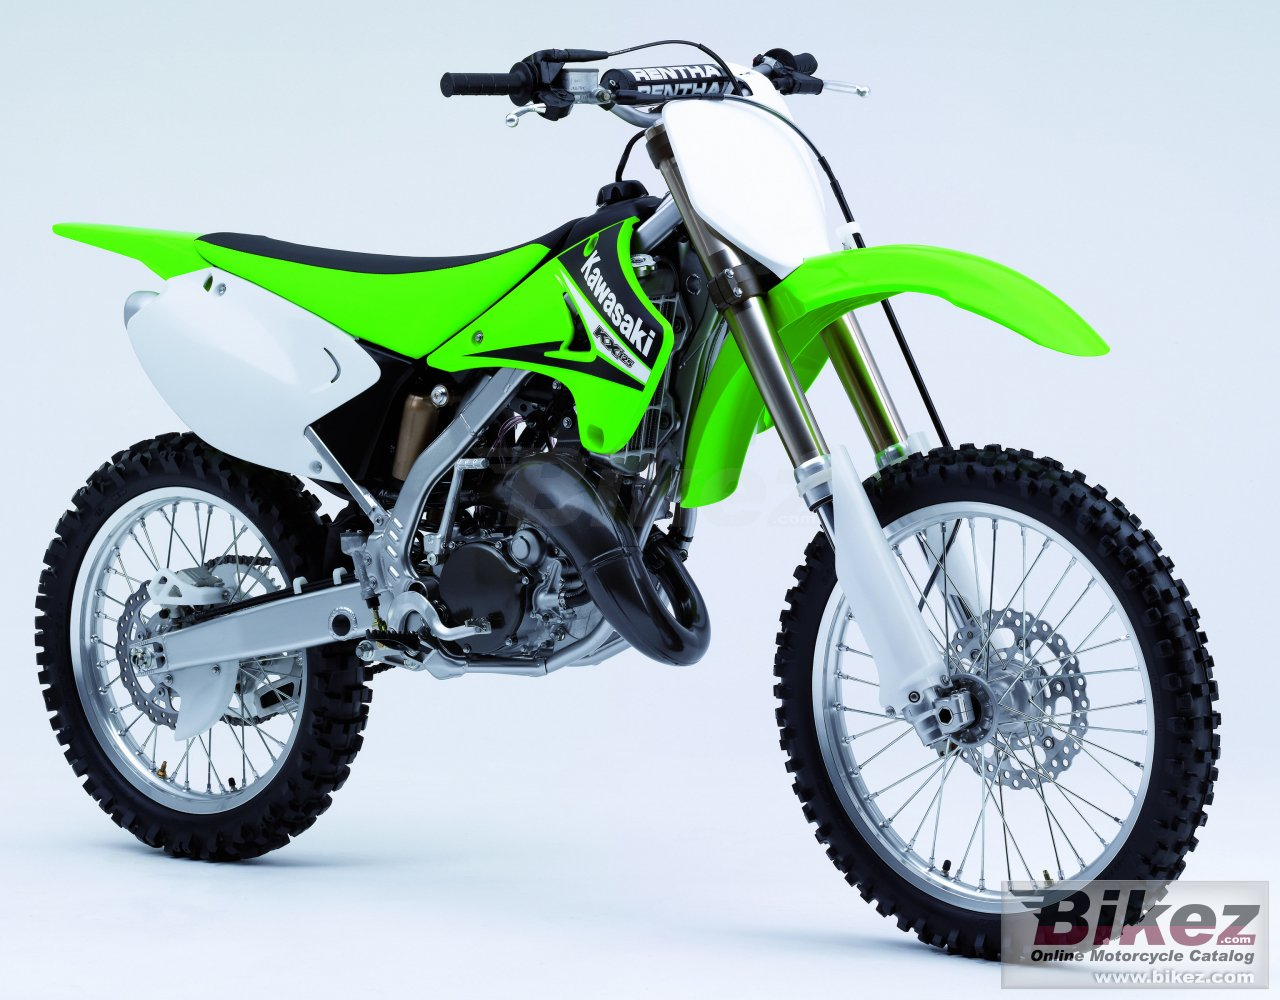 Big Kawasaki kx 125 picture and wallpaper from Bikez.com